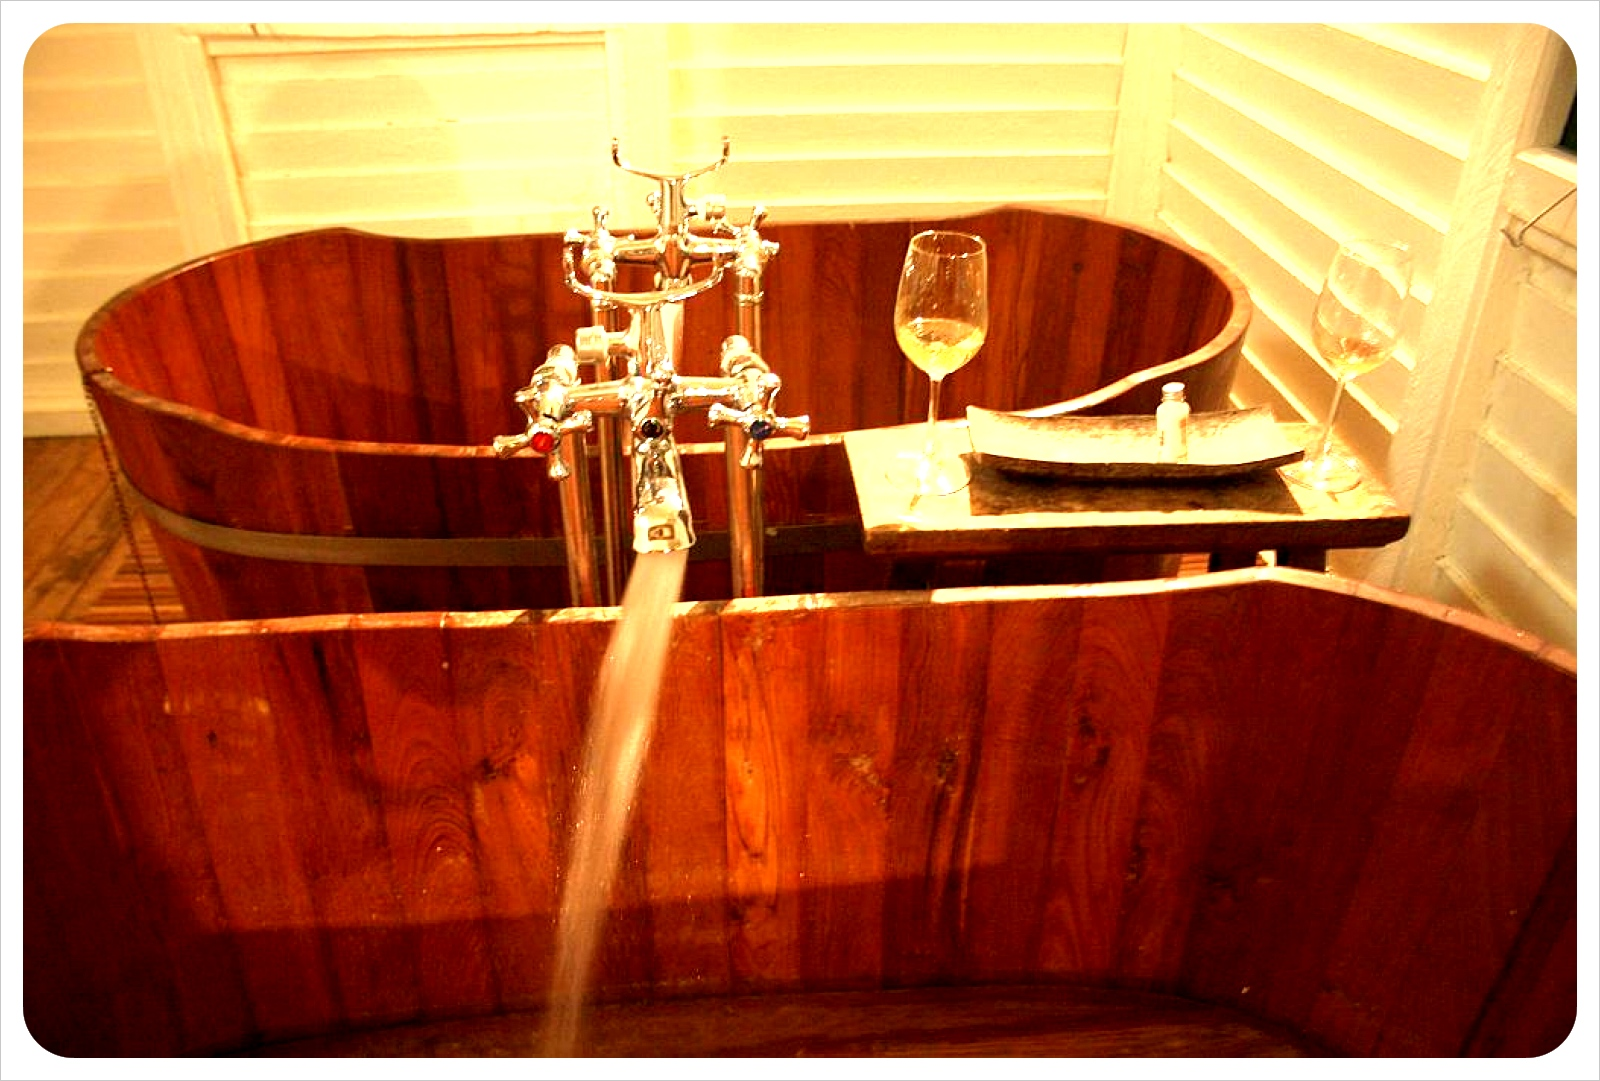 temple tree bathtubs & wine